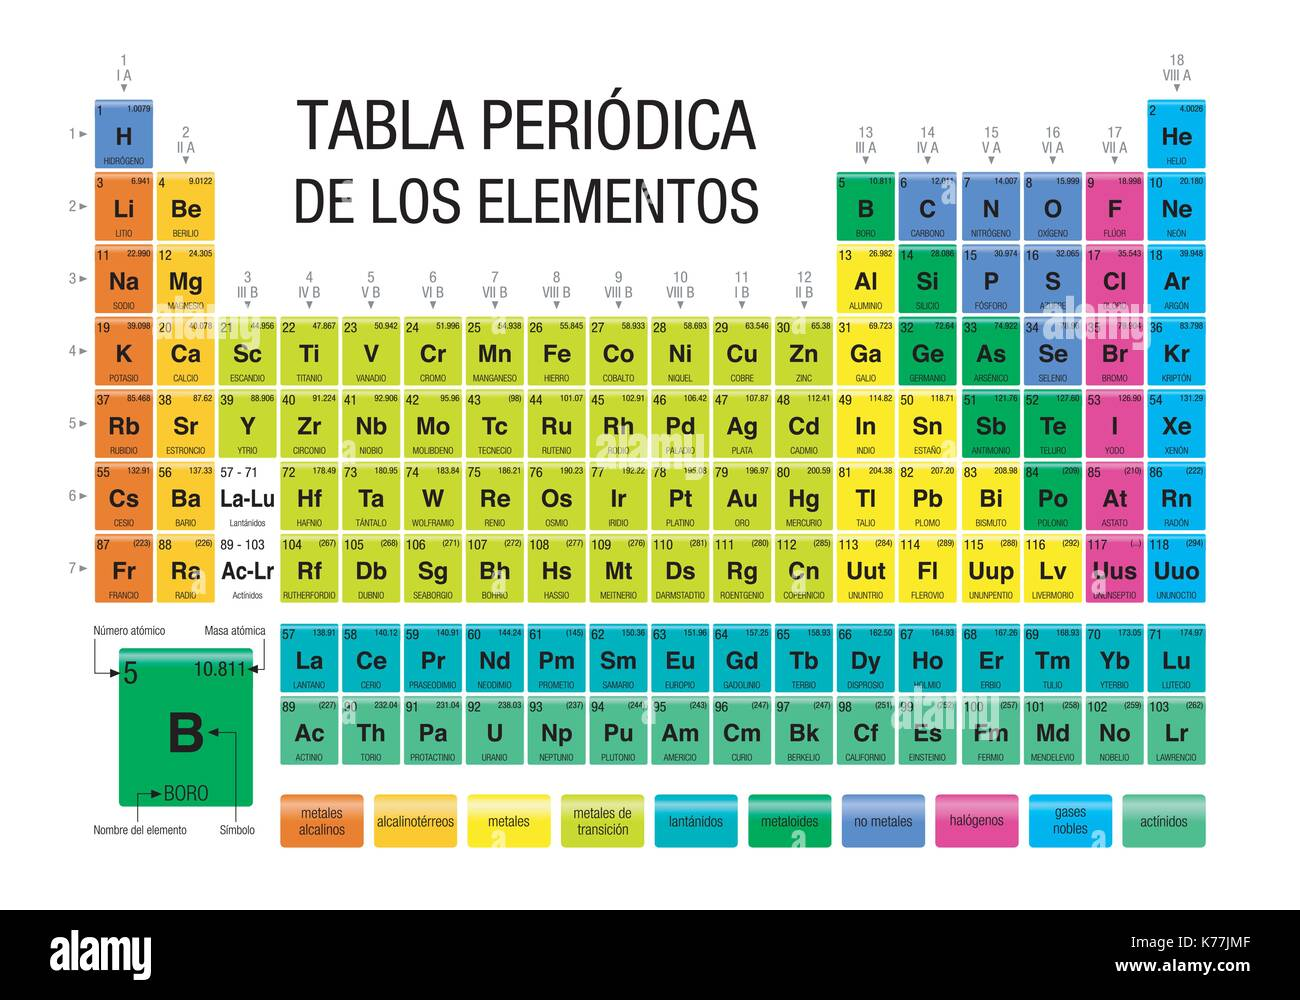 Tabla periodica de los elementos periodic table of elements in tabla periodica de los elementos periodic table of elements in spanish language chemistry urtaz Gallery